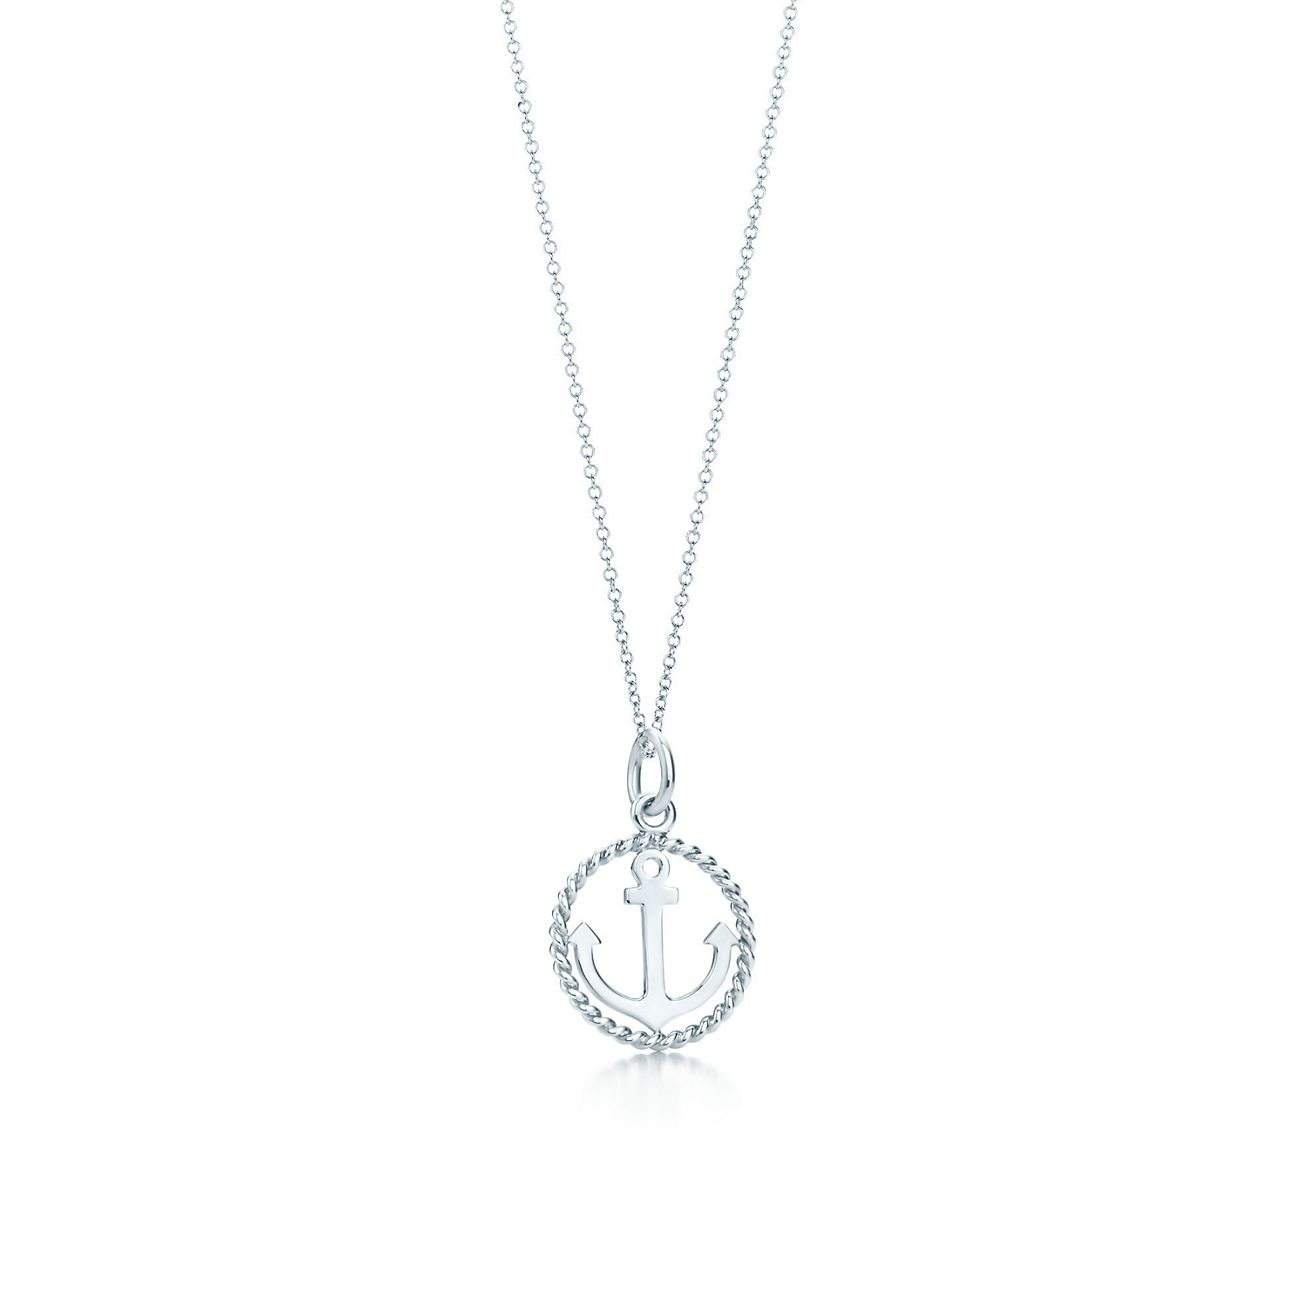 Tiffany twist anchor charm in sterling silver on a chain small tiffany twistanchor charm and chain aloadofball Image collections